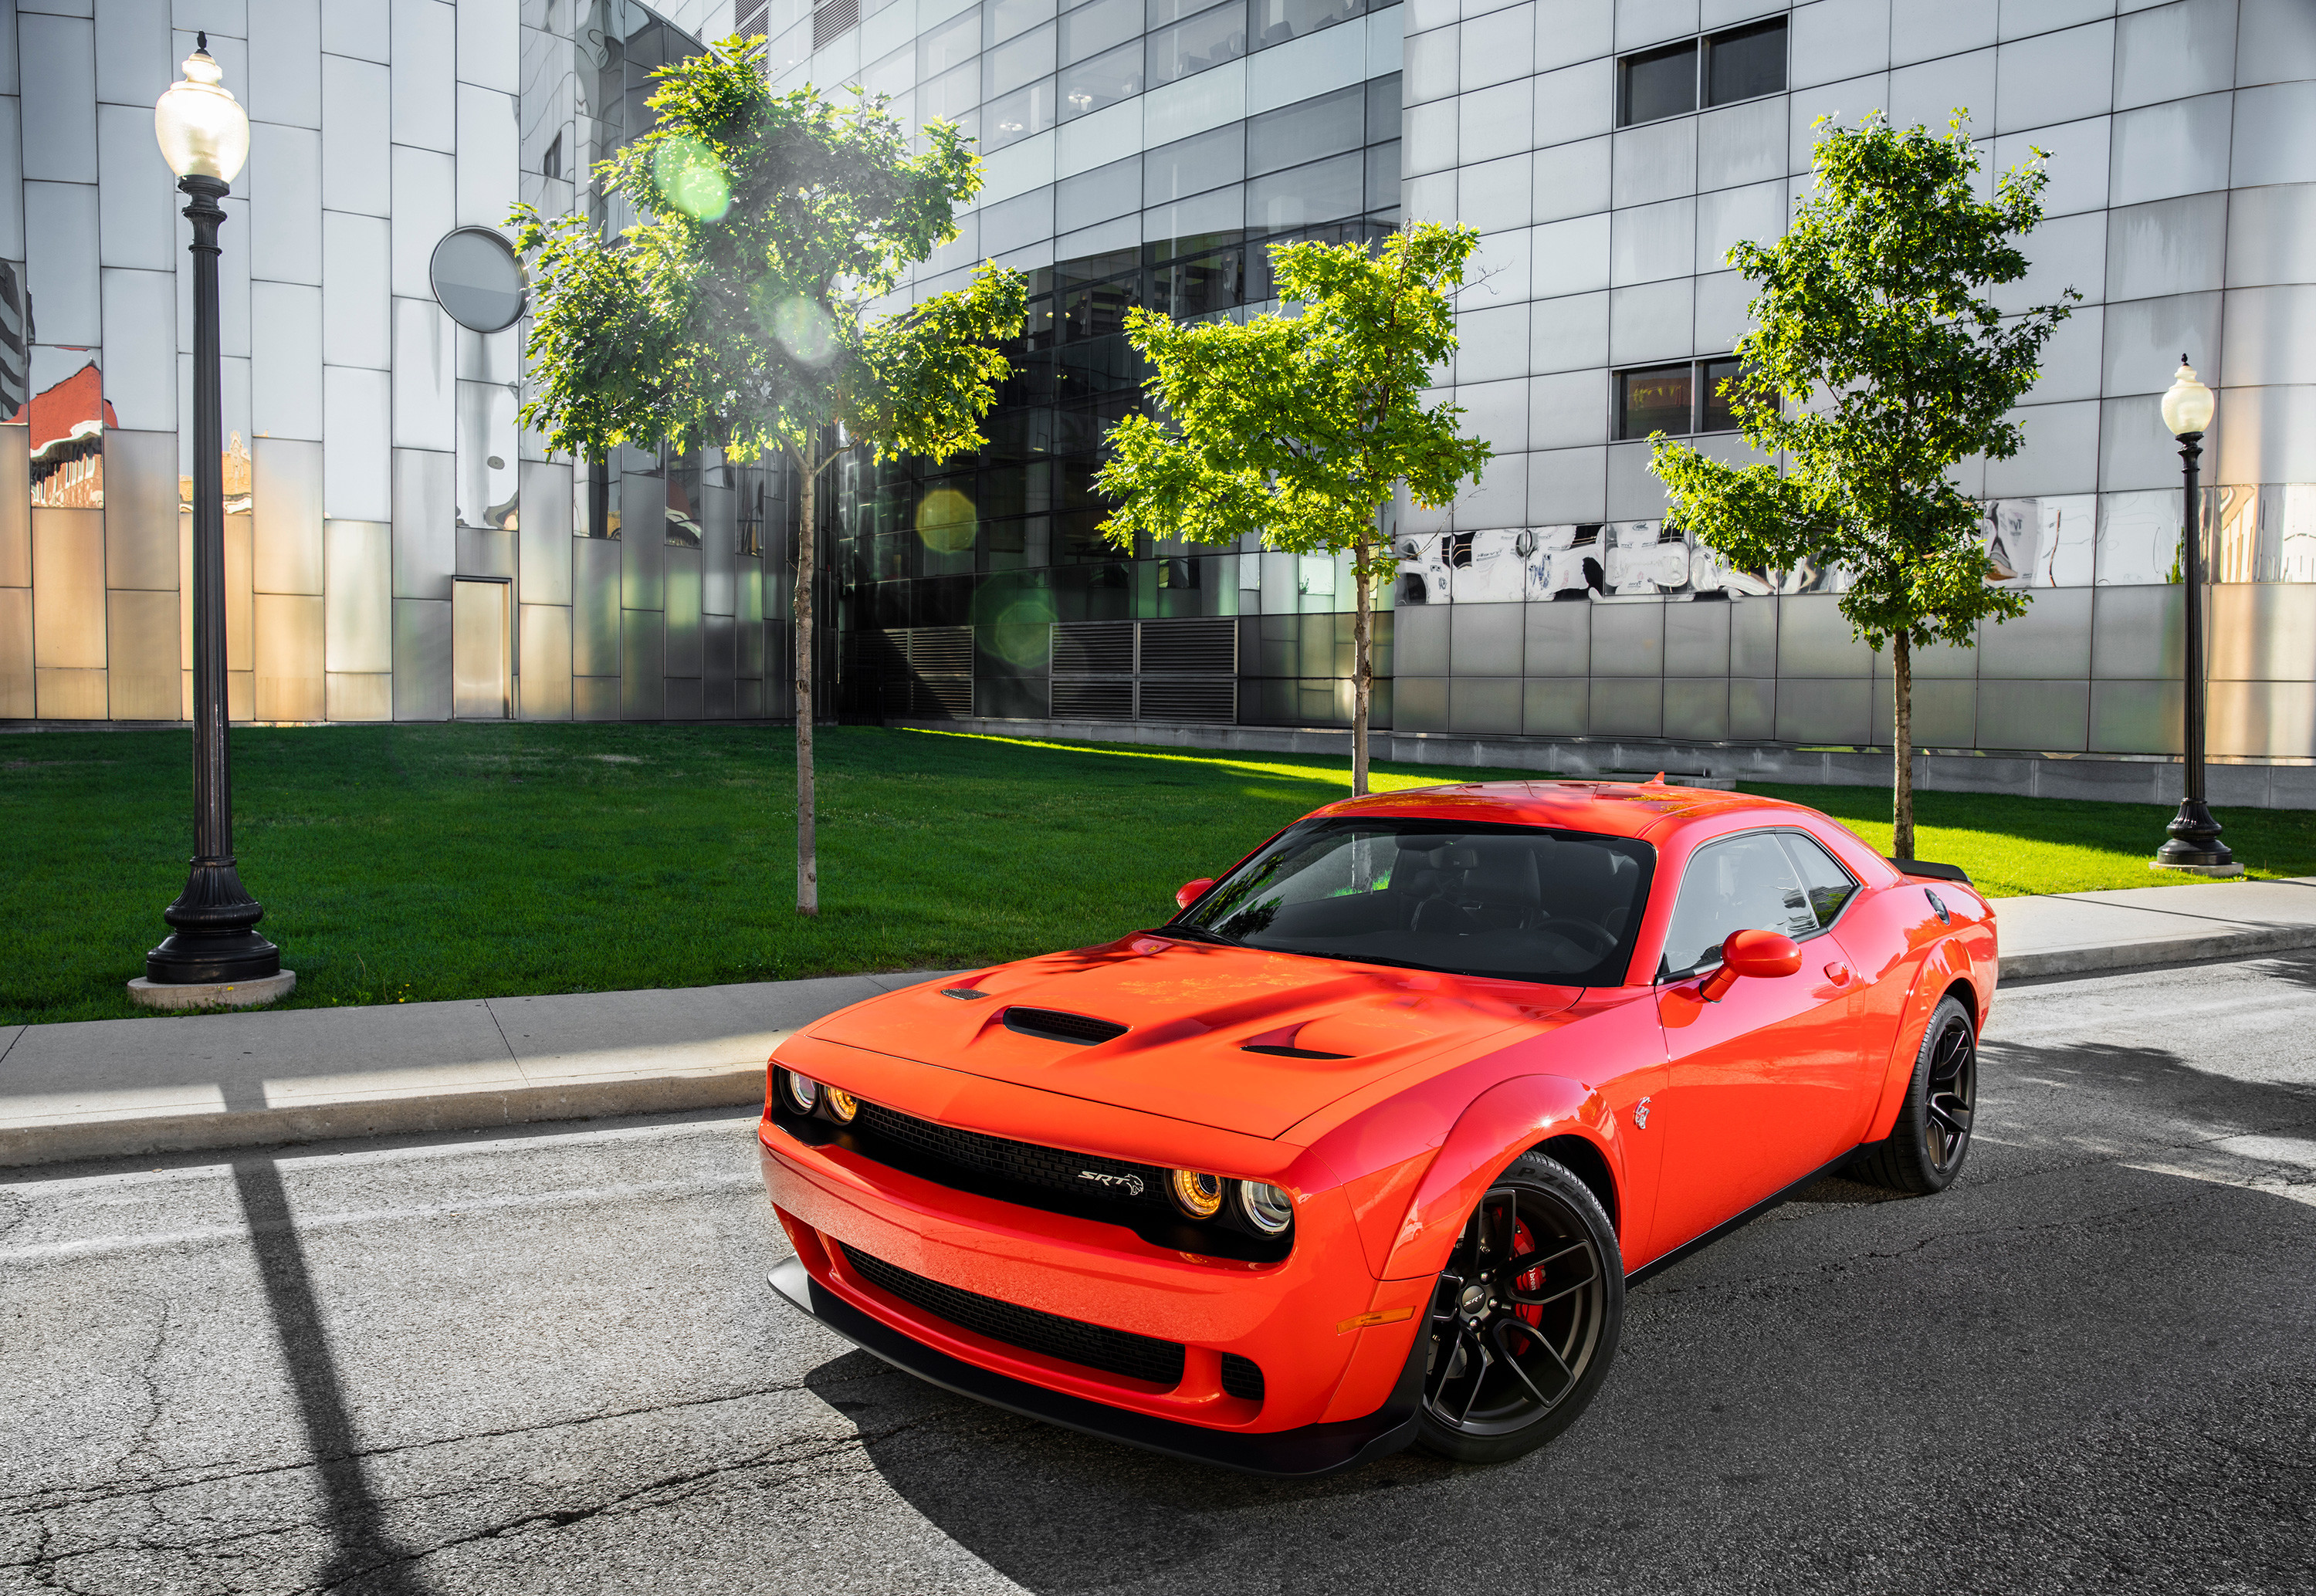 Res: 3000x2068, Dodge Challenger SRT Hellcat Widebody 4k